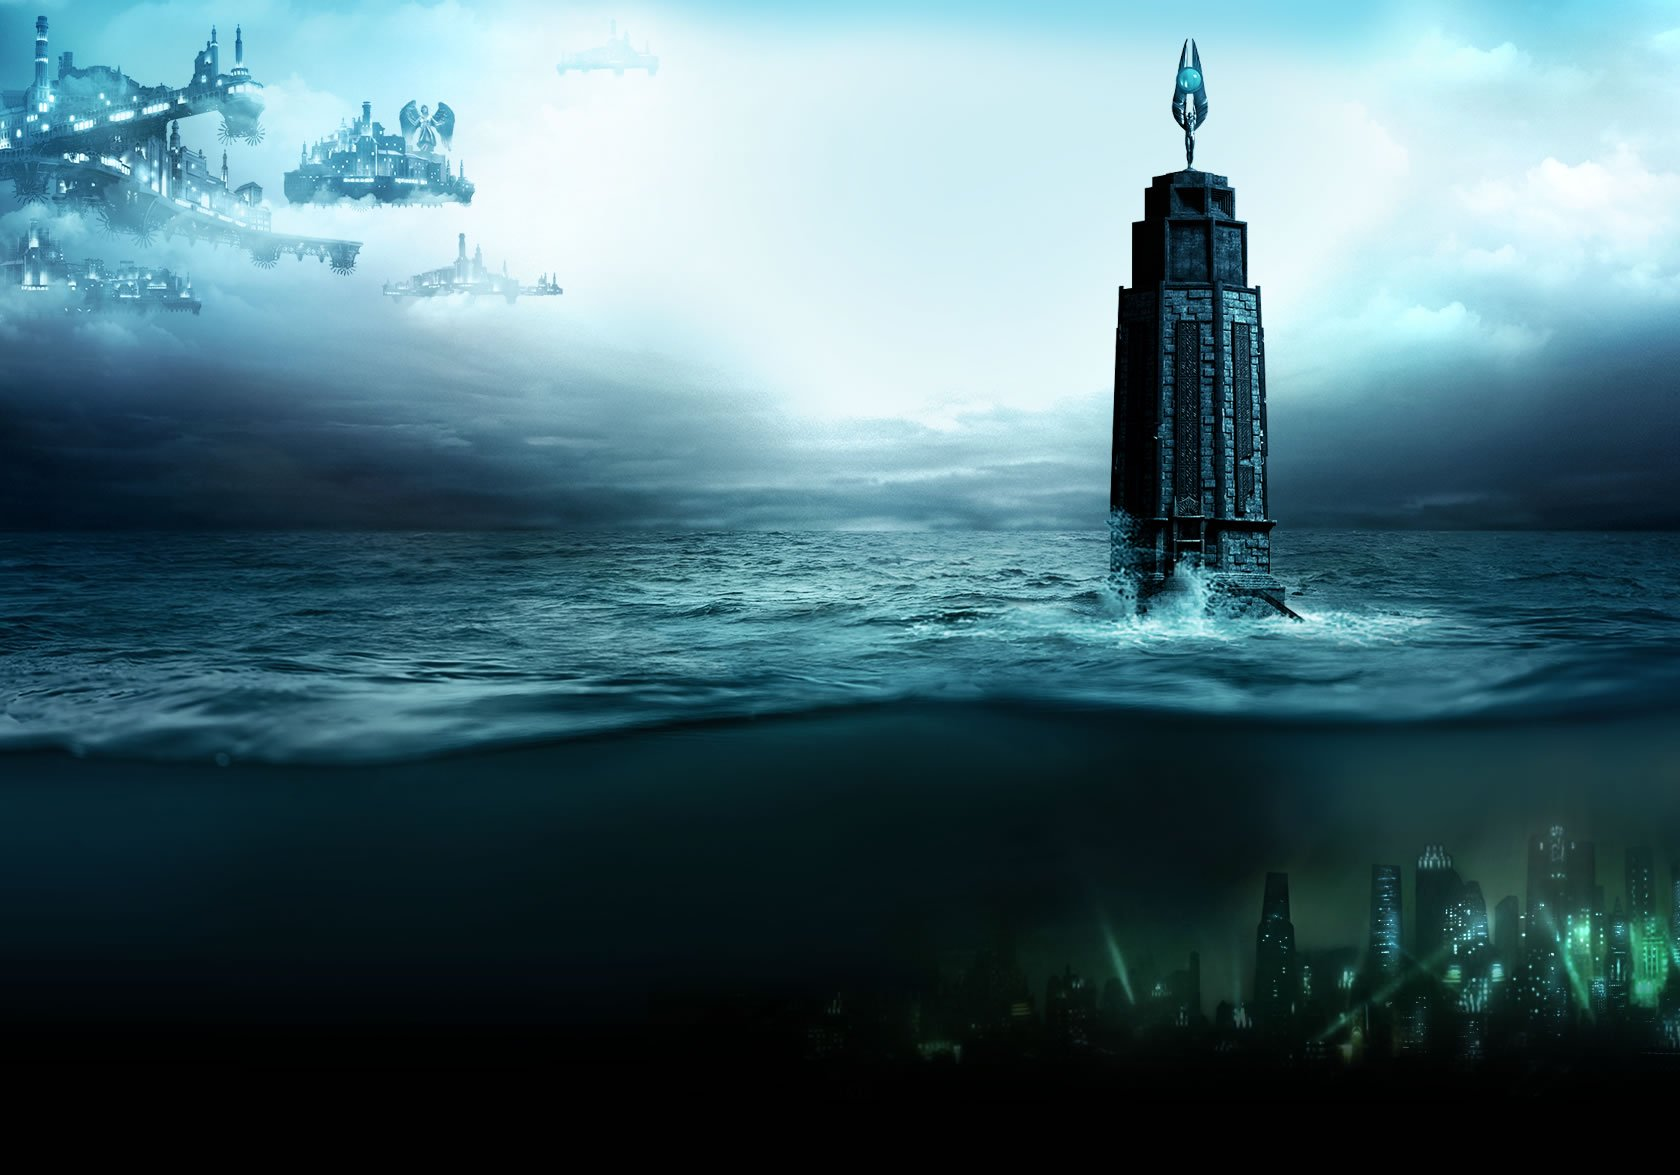 bioshock the collection quiz